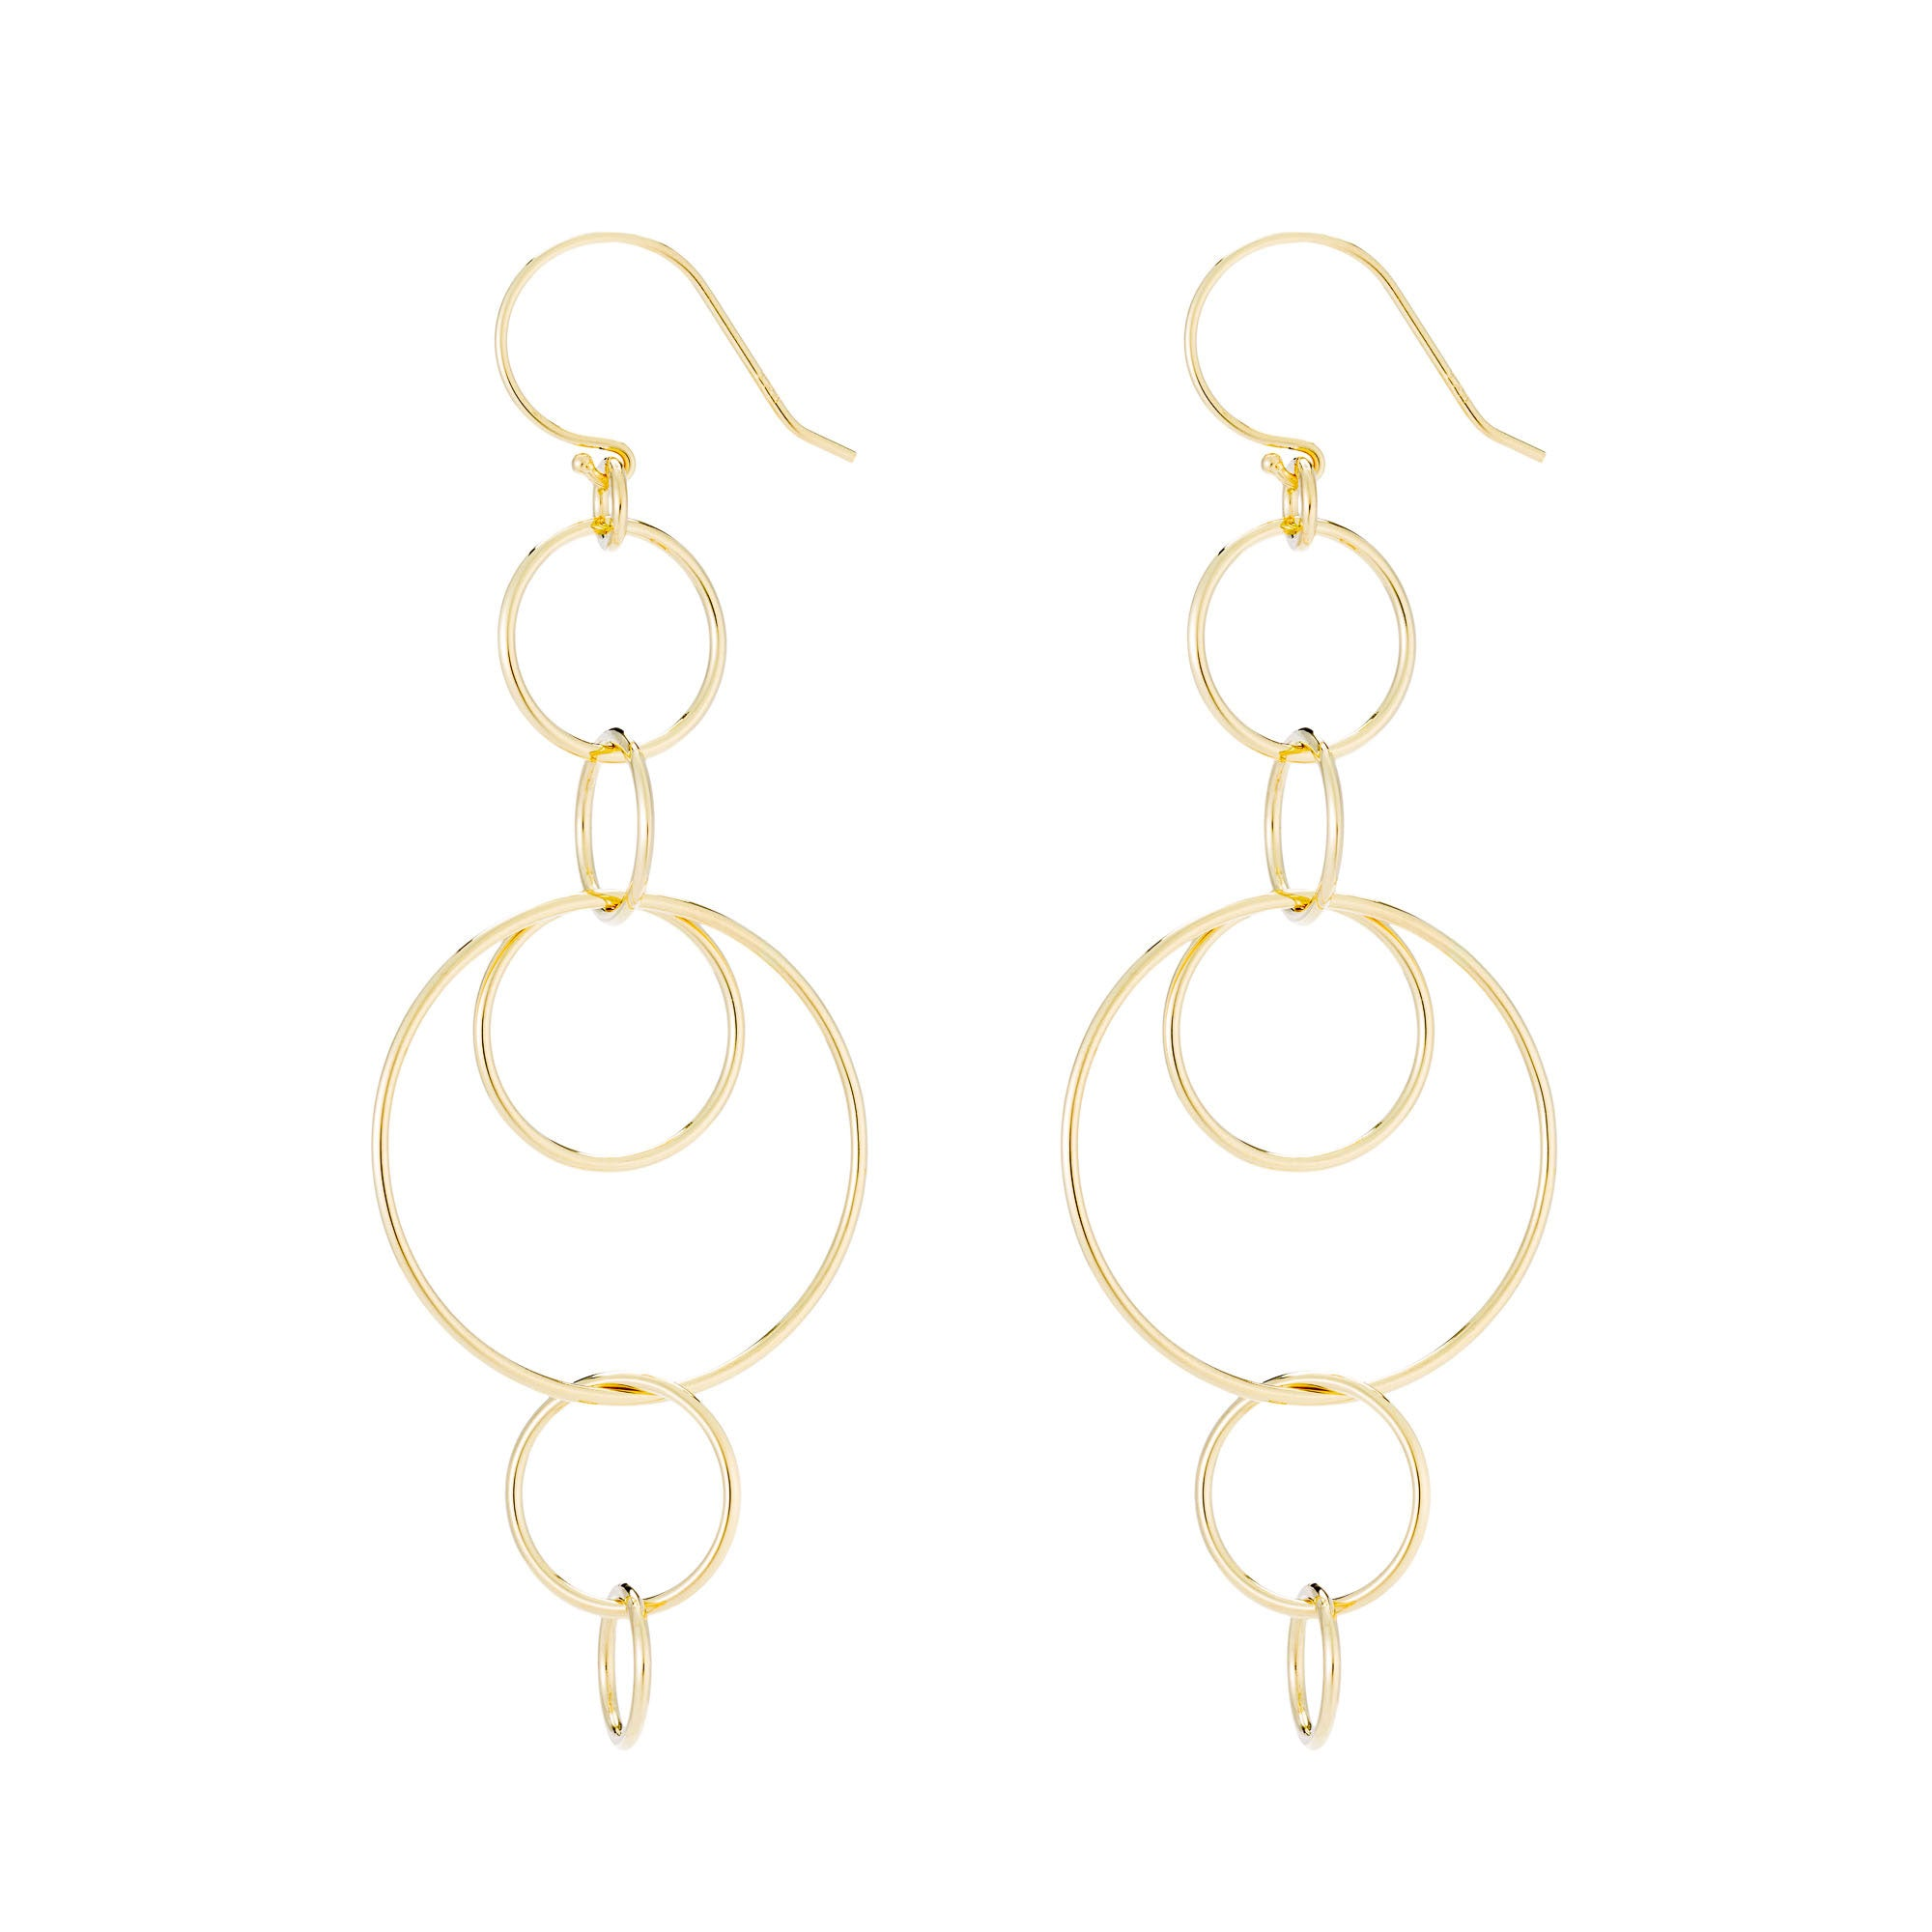 14K Gold Champagne Link Earrings